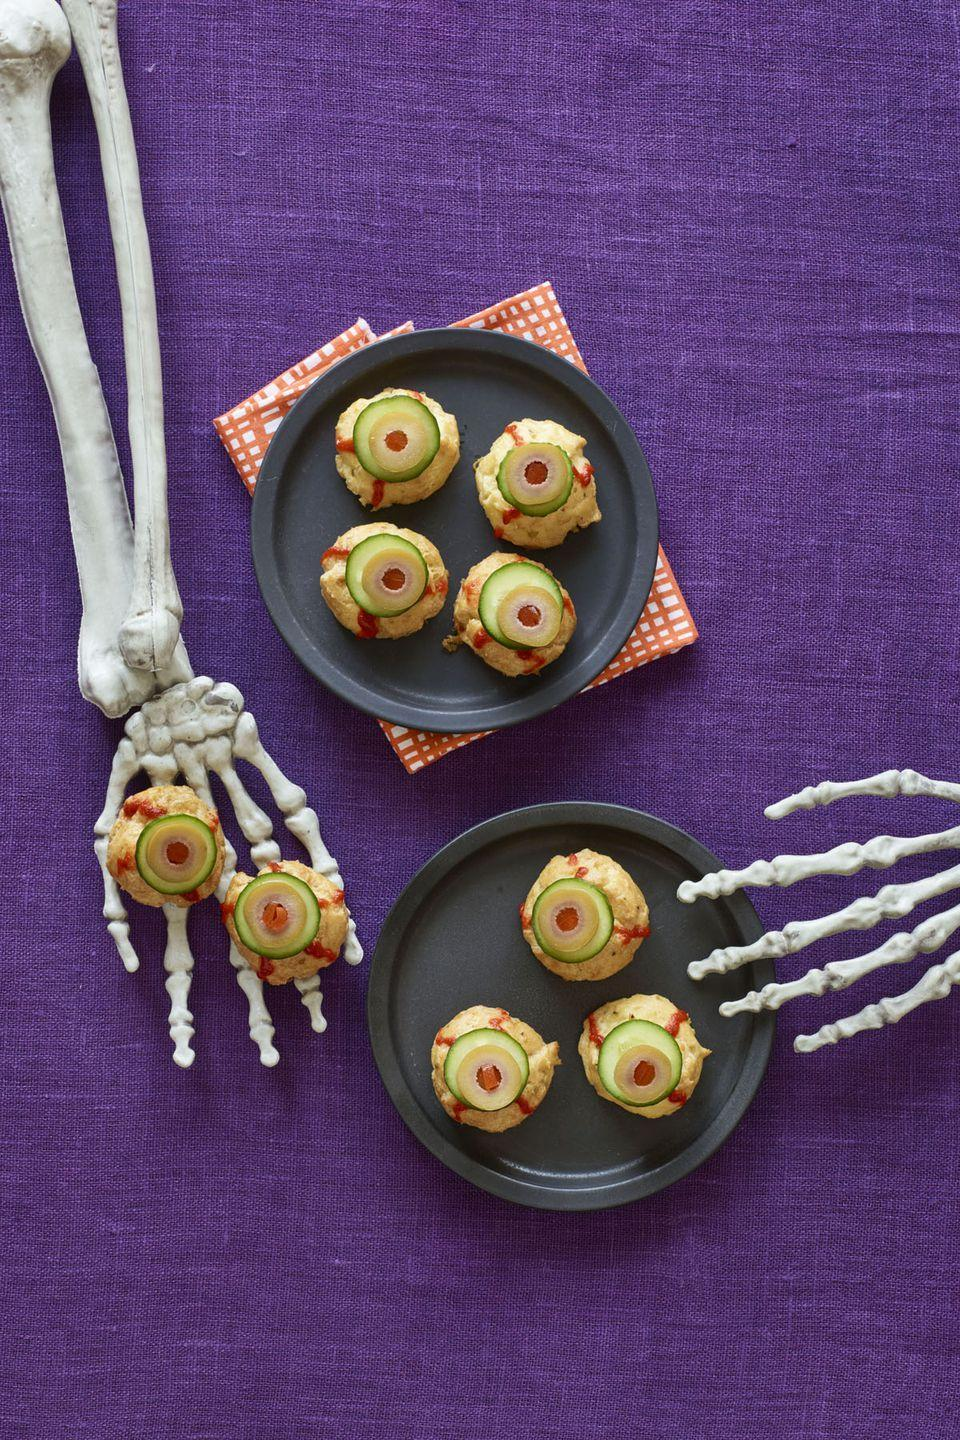 "<p>Top these cheese pastry puffs with slices of cucumber, olives, and squiggles of spicy Sriracha for a Halloween treat you won't be able to take your eyes off.</p><p><strong><a href=""https://www.womansday.com/food-recipes/recipes/a60165/bitesize-eyeballs-recipe/"" rel=""nofollow noopener"" target=""_blank"" data-ylk=""slk:Get the recipe"" class=""link rapid-noclick-resp"">Get the recipe</a>.</strong></p>"